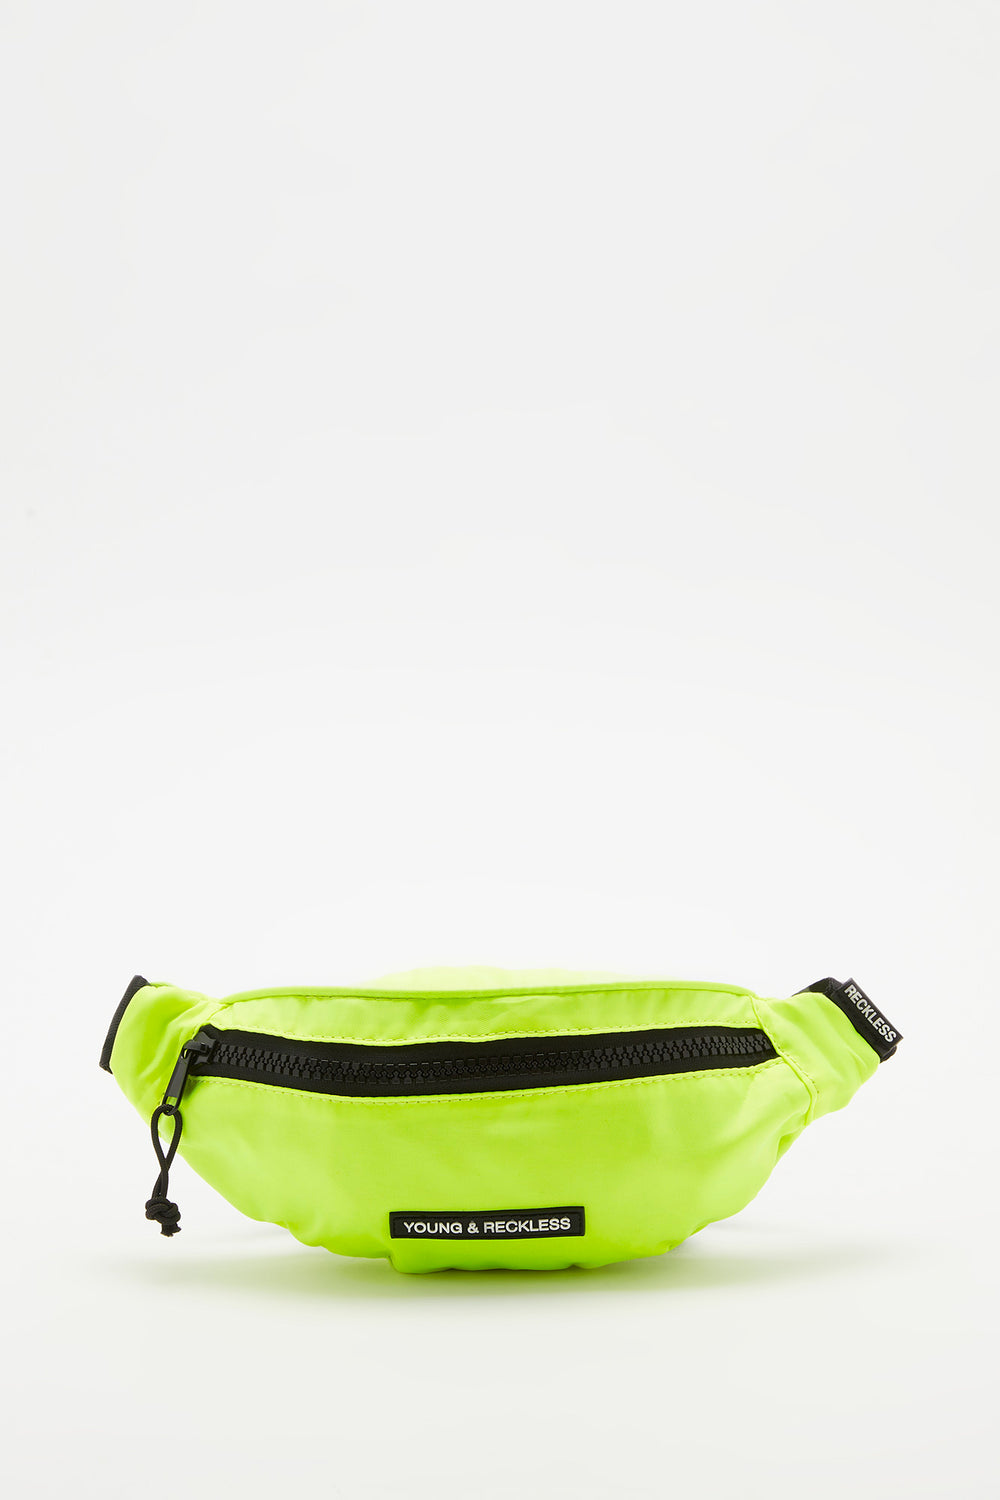 Young & Reckless Neon Fanny Pack Green